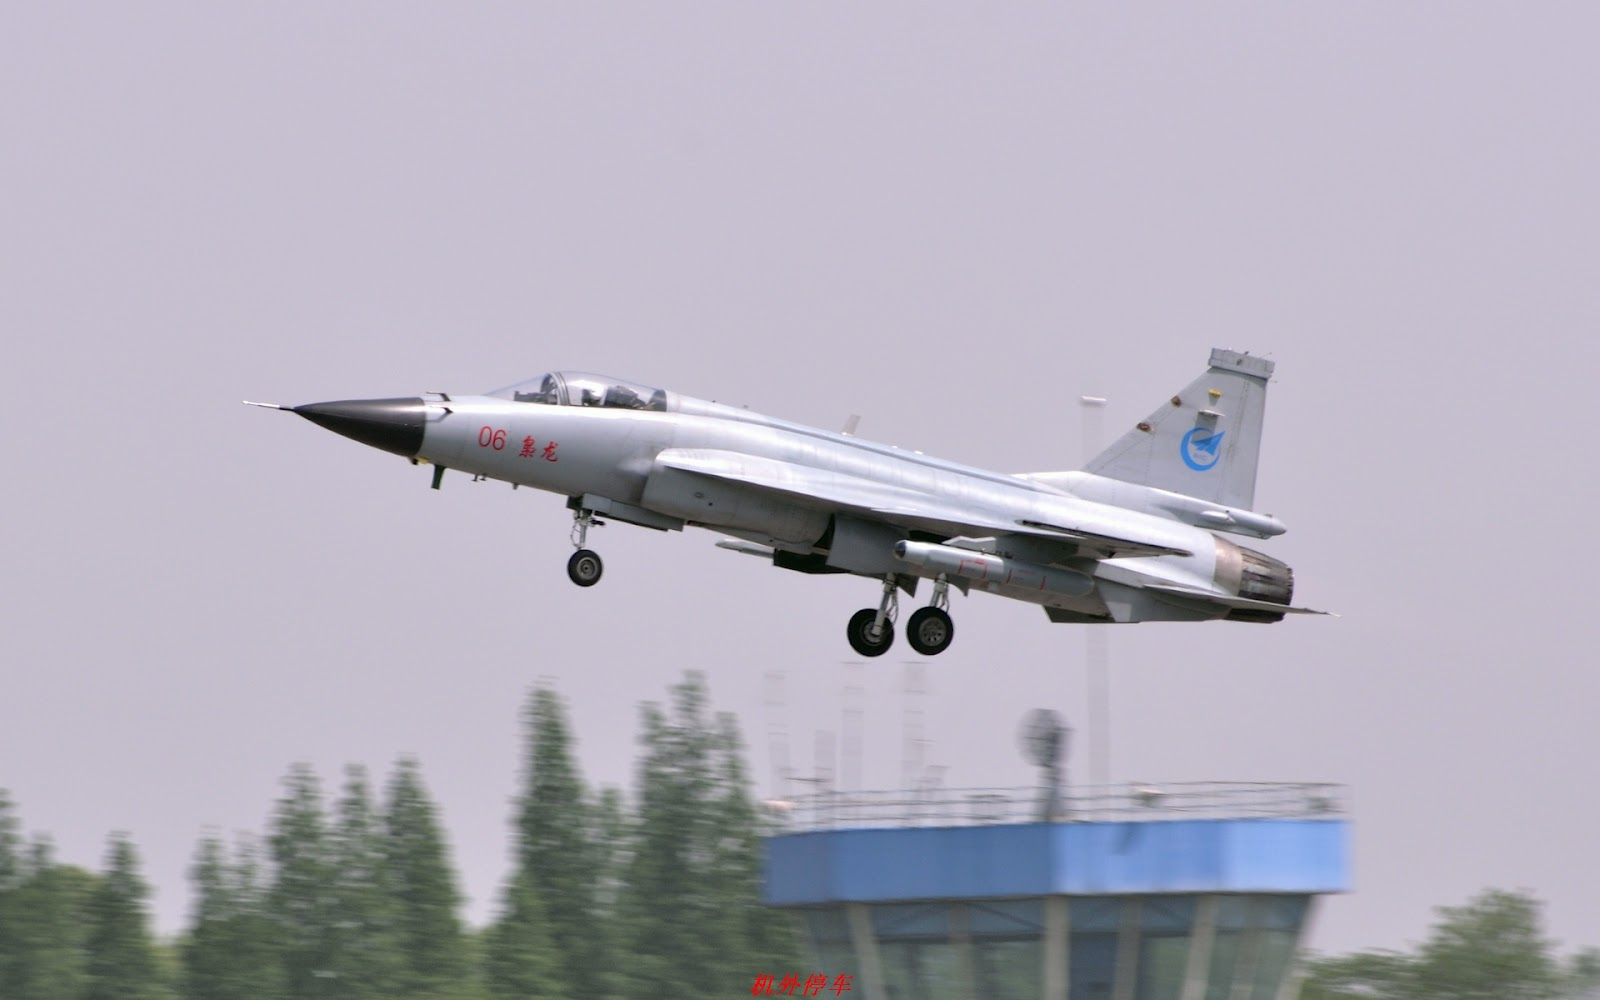 Chinese-Pakistani fighter jet JF-17